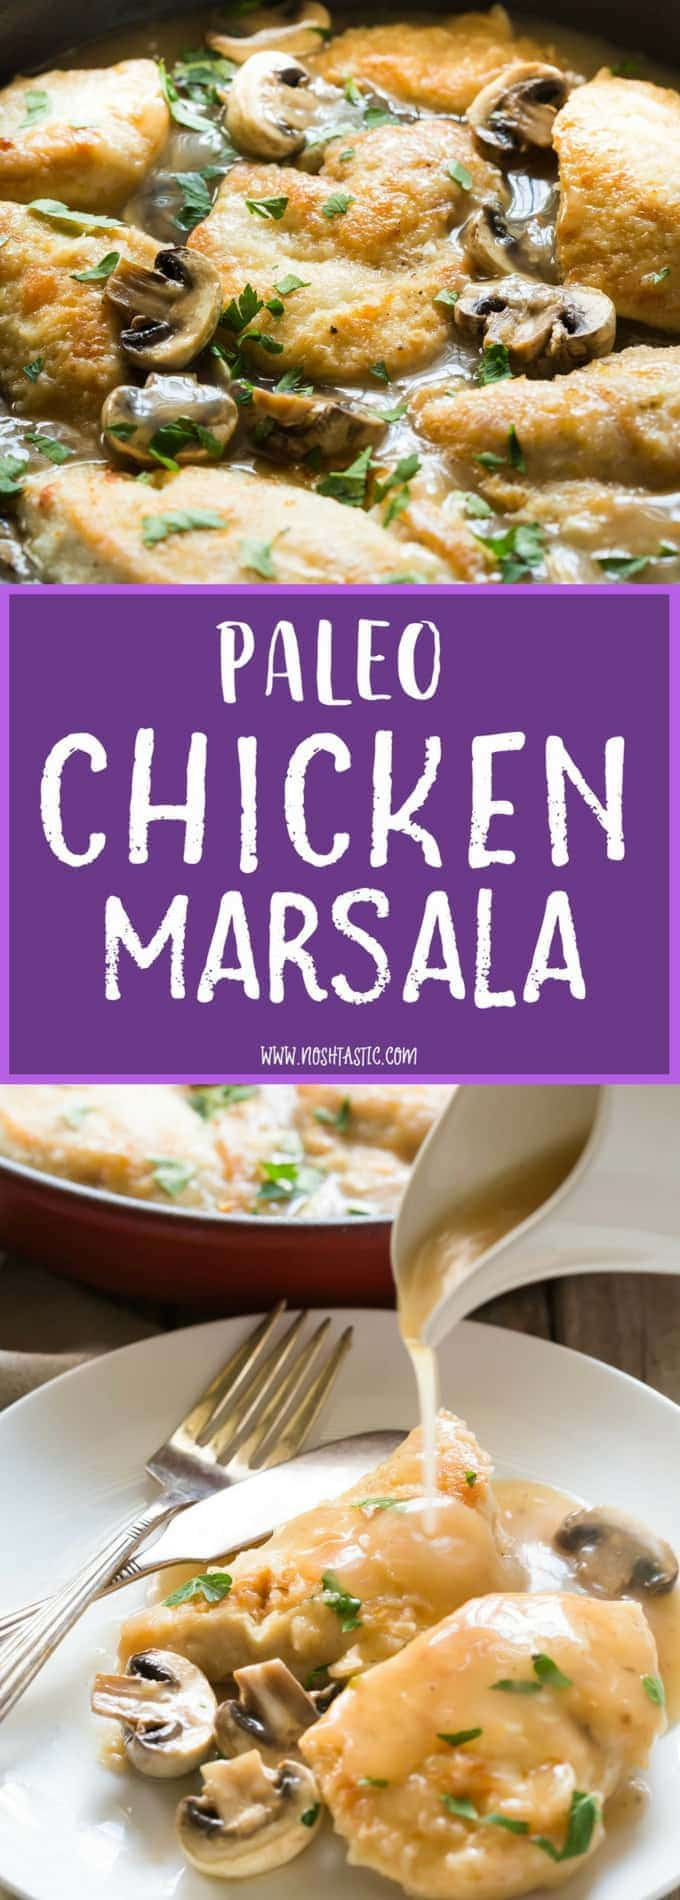 30 Minute Paleo Chicken Marsala recipe made with chicken, mushrooms, marsala wine, chicken broth and garnished with parsley. Thickened with arrowroot (or use cornstarch if you are not paleo) and you can serve it over mashed potatoes or zoodles. Dairy Free, Gluten Free, better than Olive Garden!